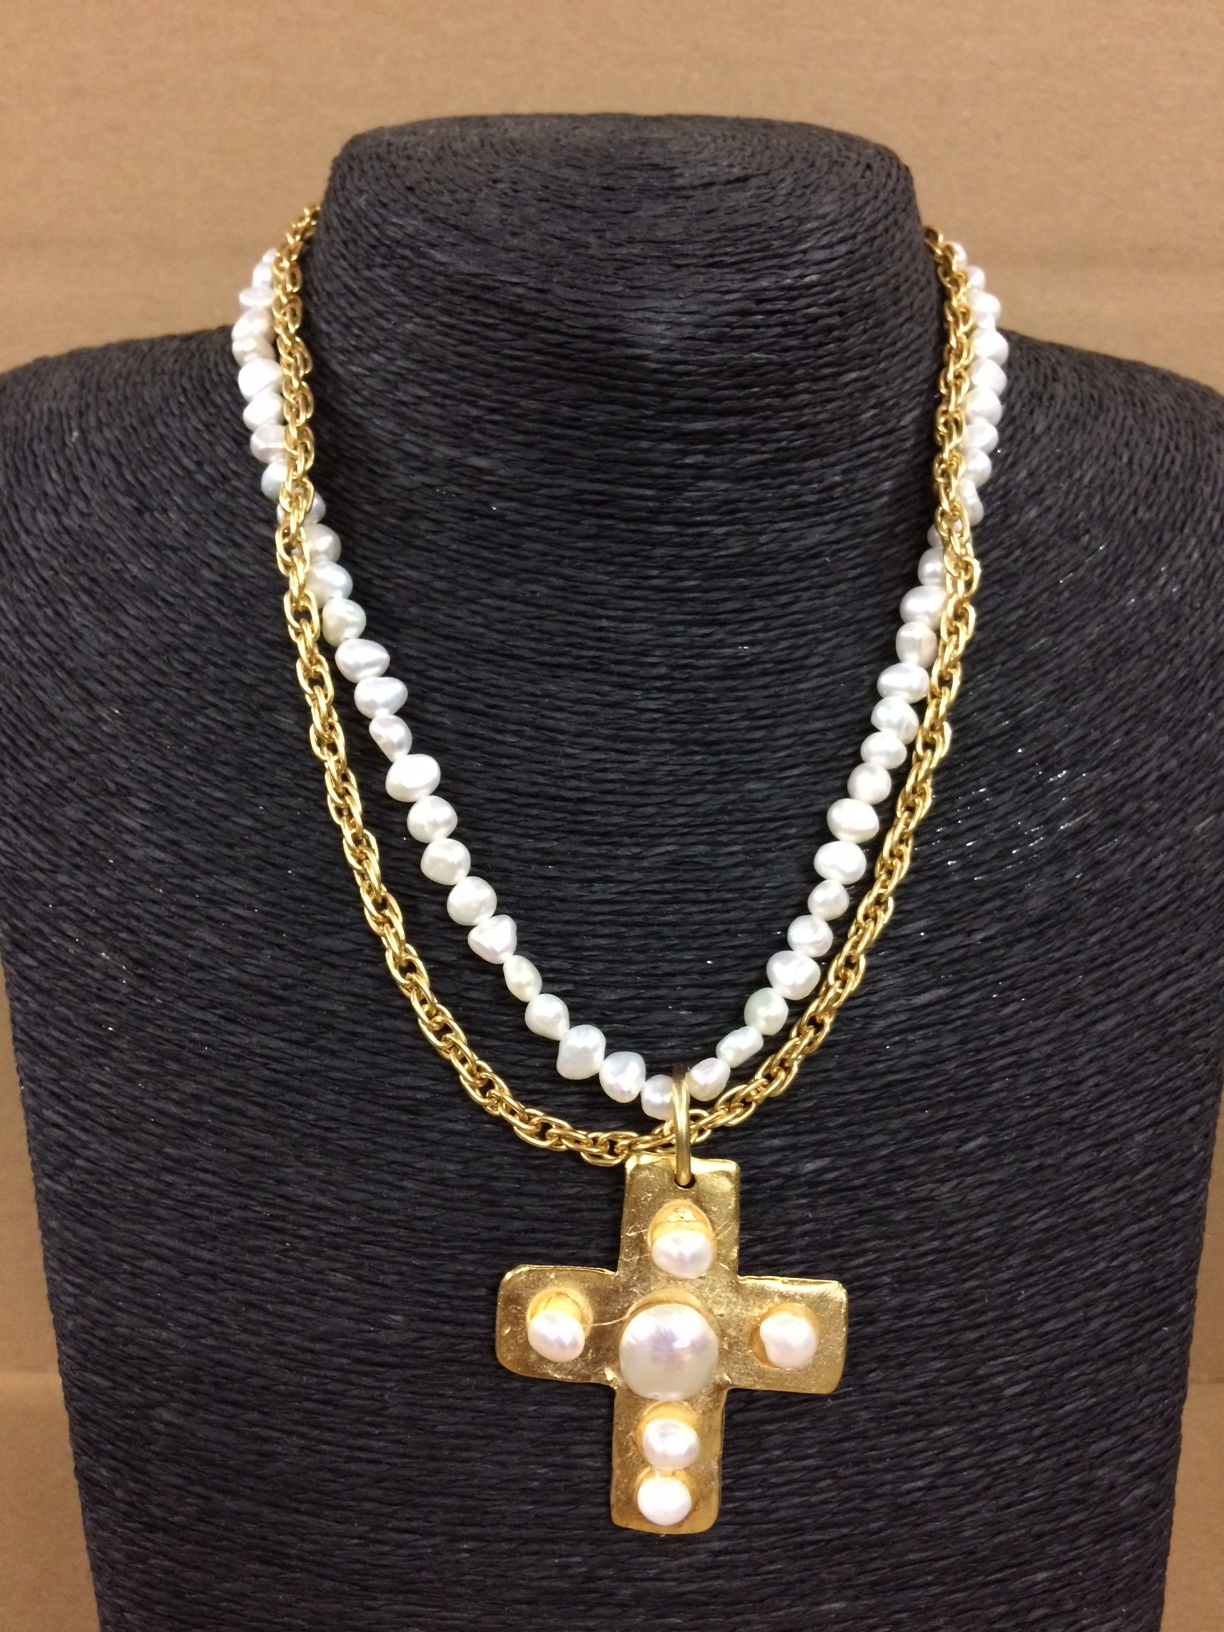 susan-shaw-necklace-gold-cross-1